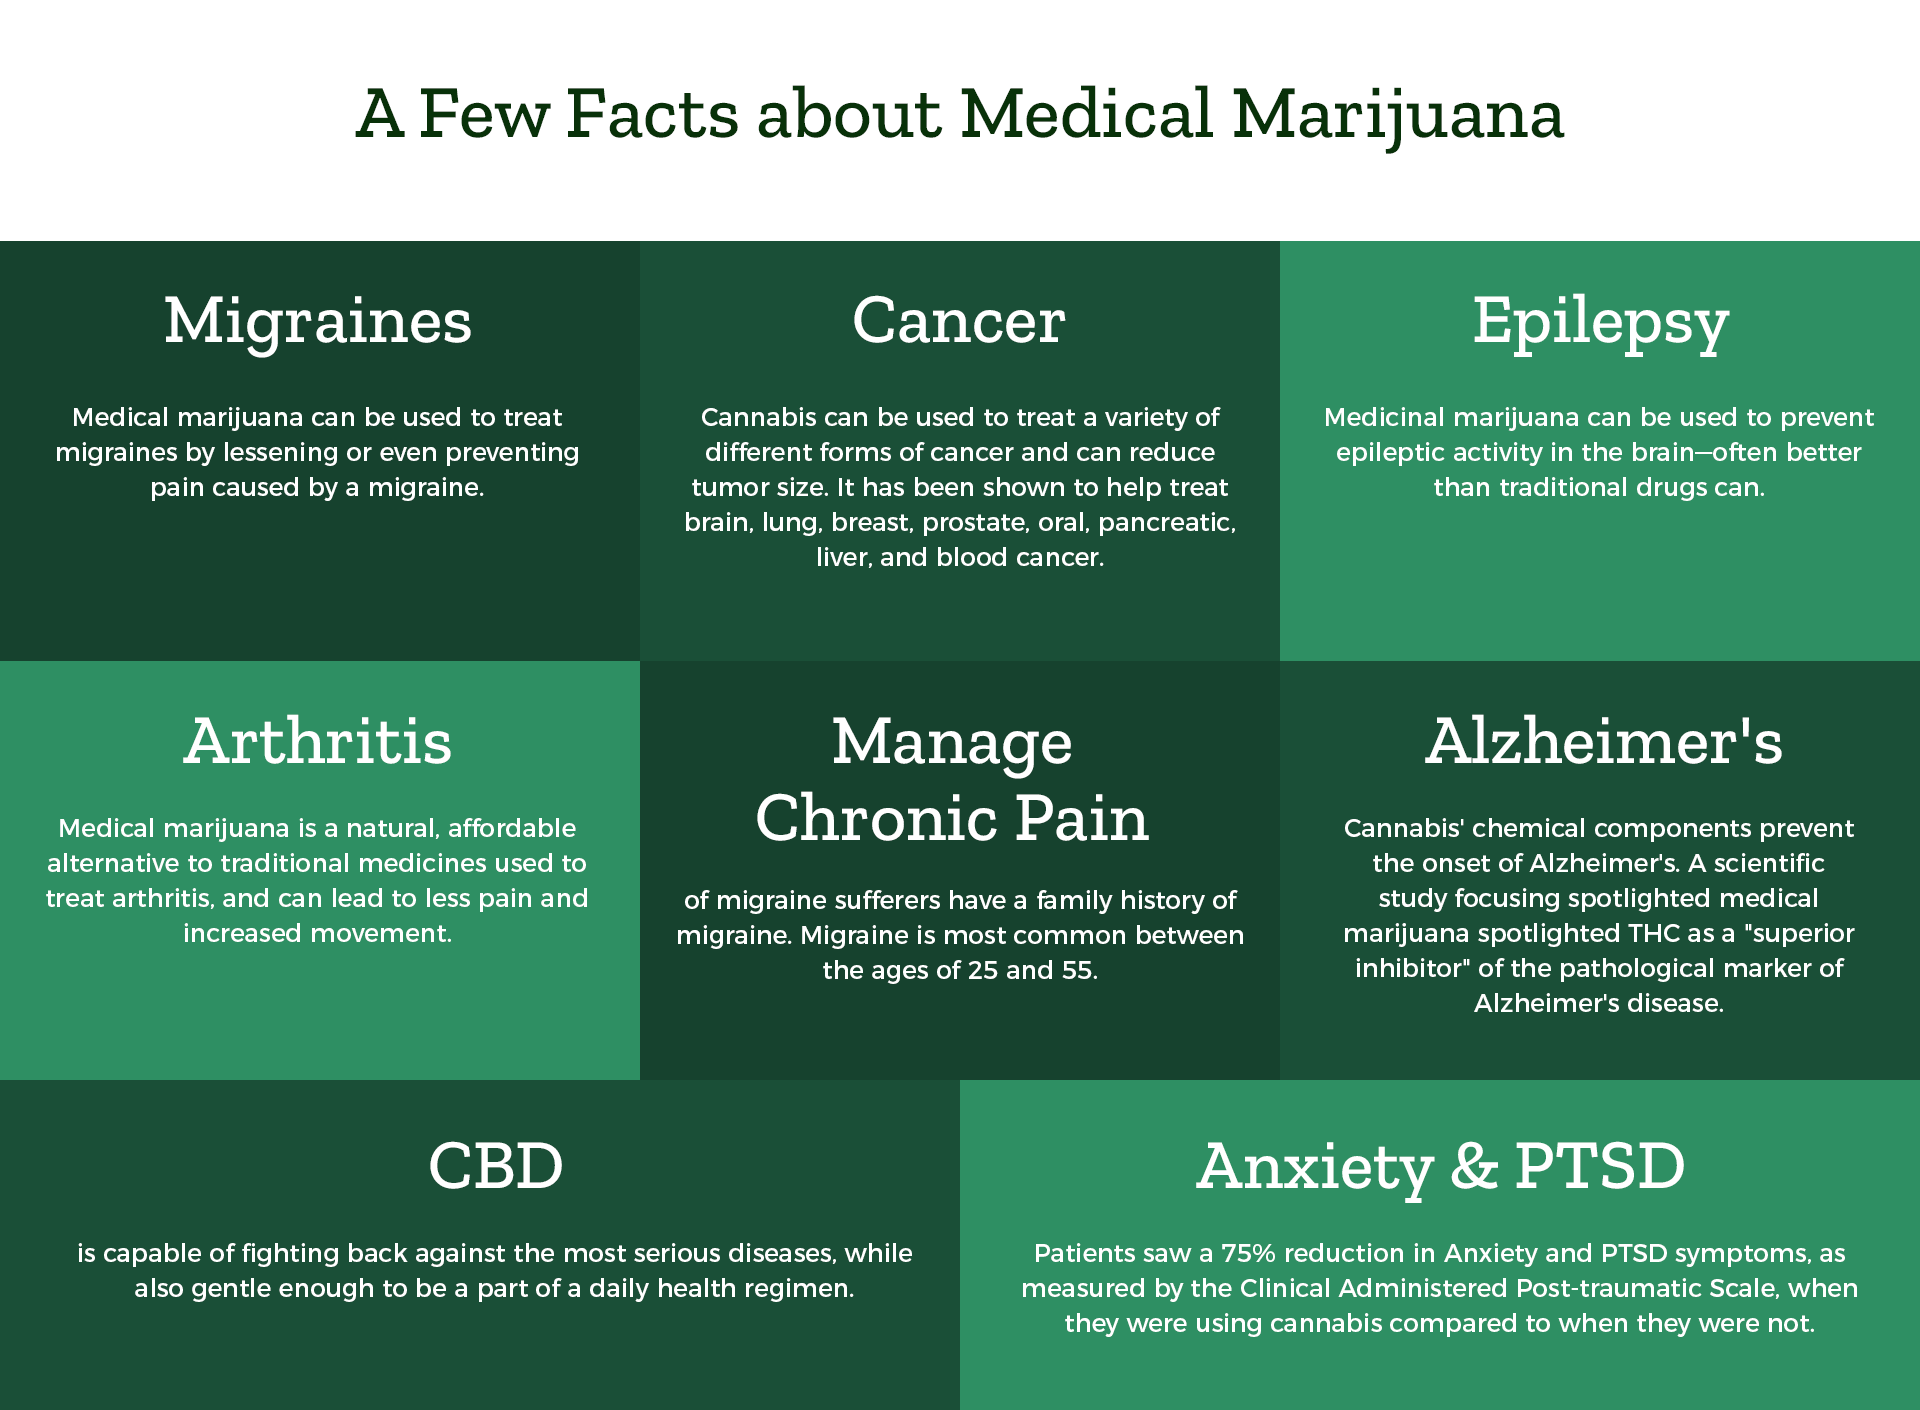 Few facts about Medical Marijuana